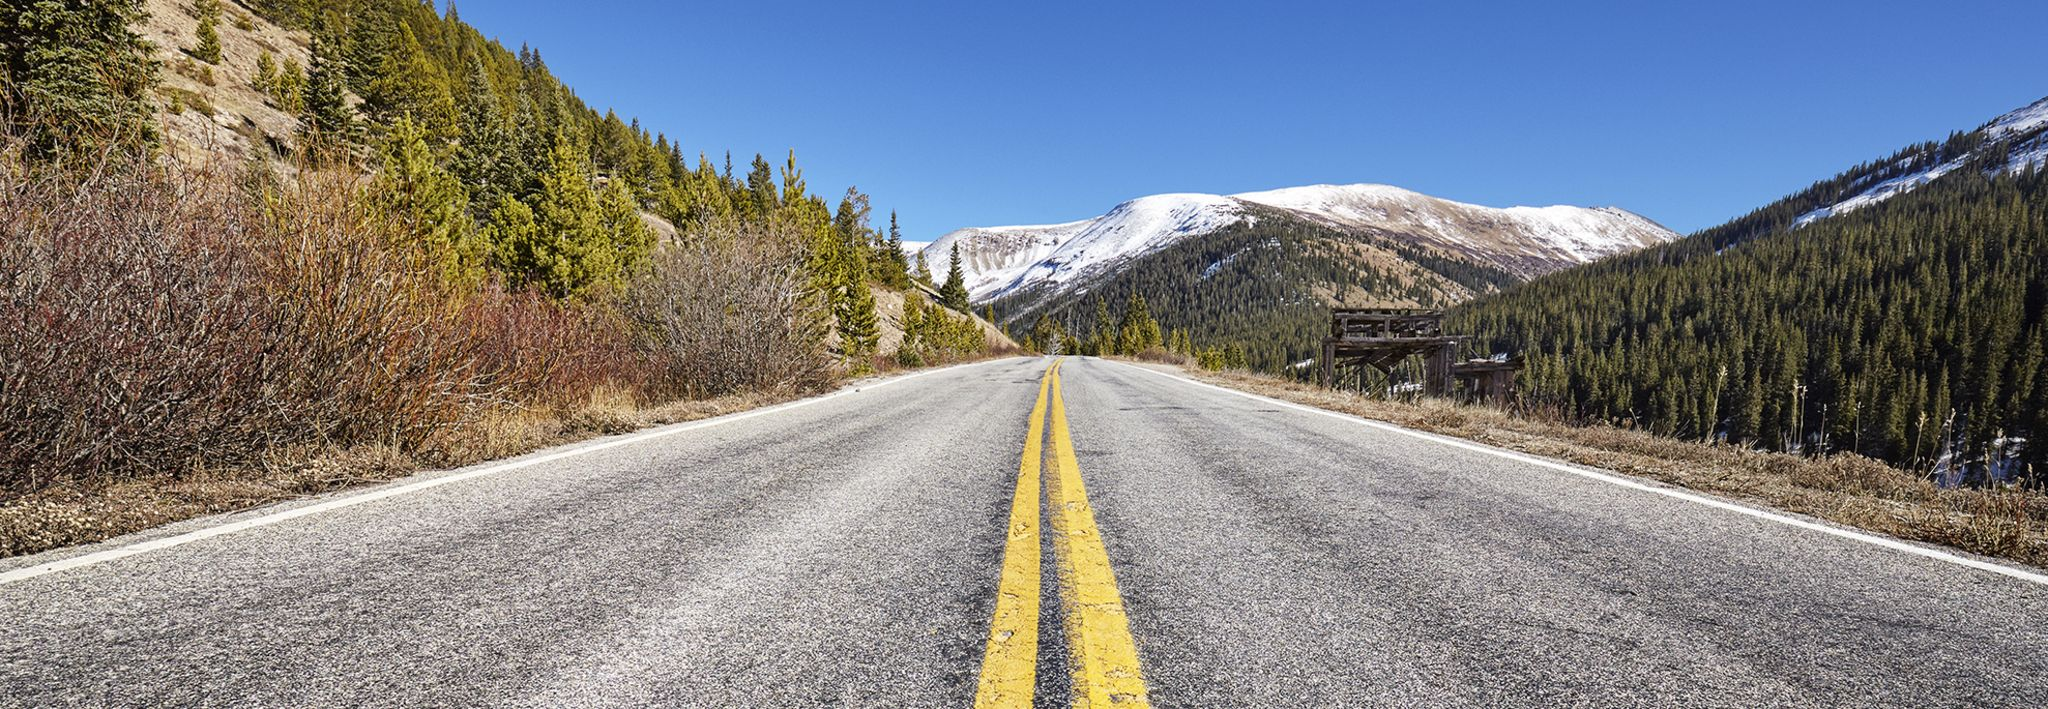 A road in the mountains leads to a snowy peak in Colorado.